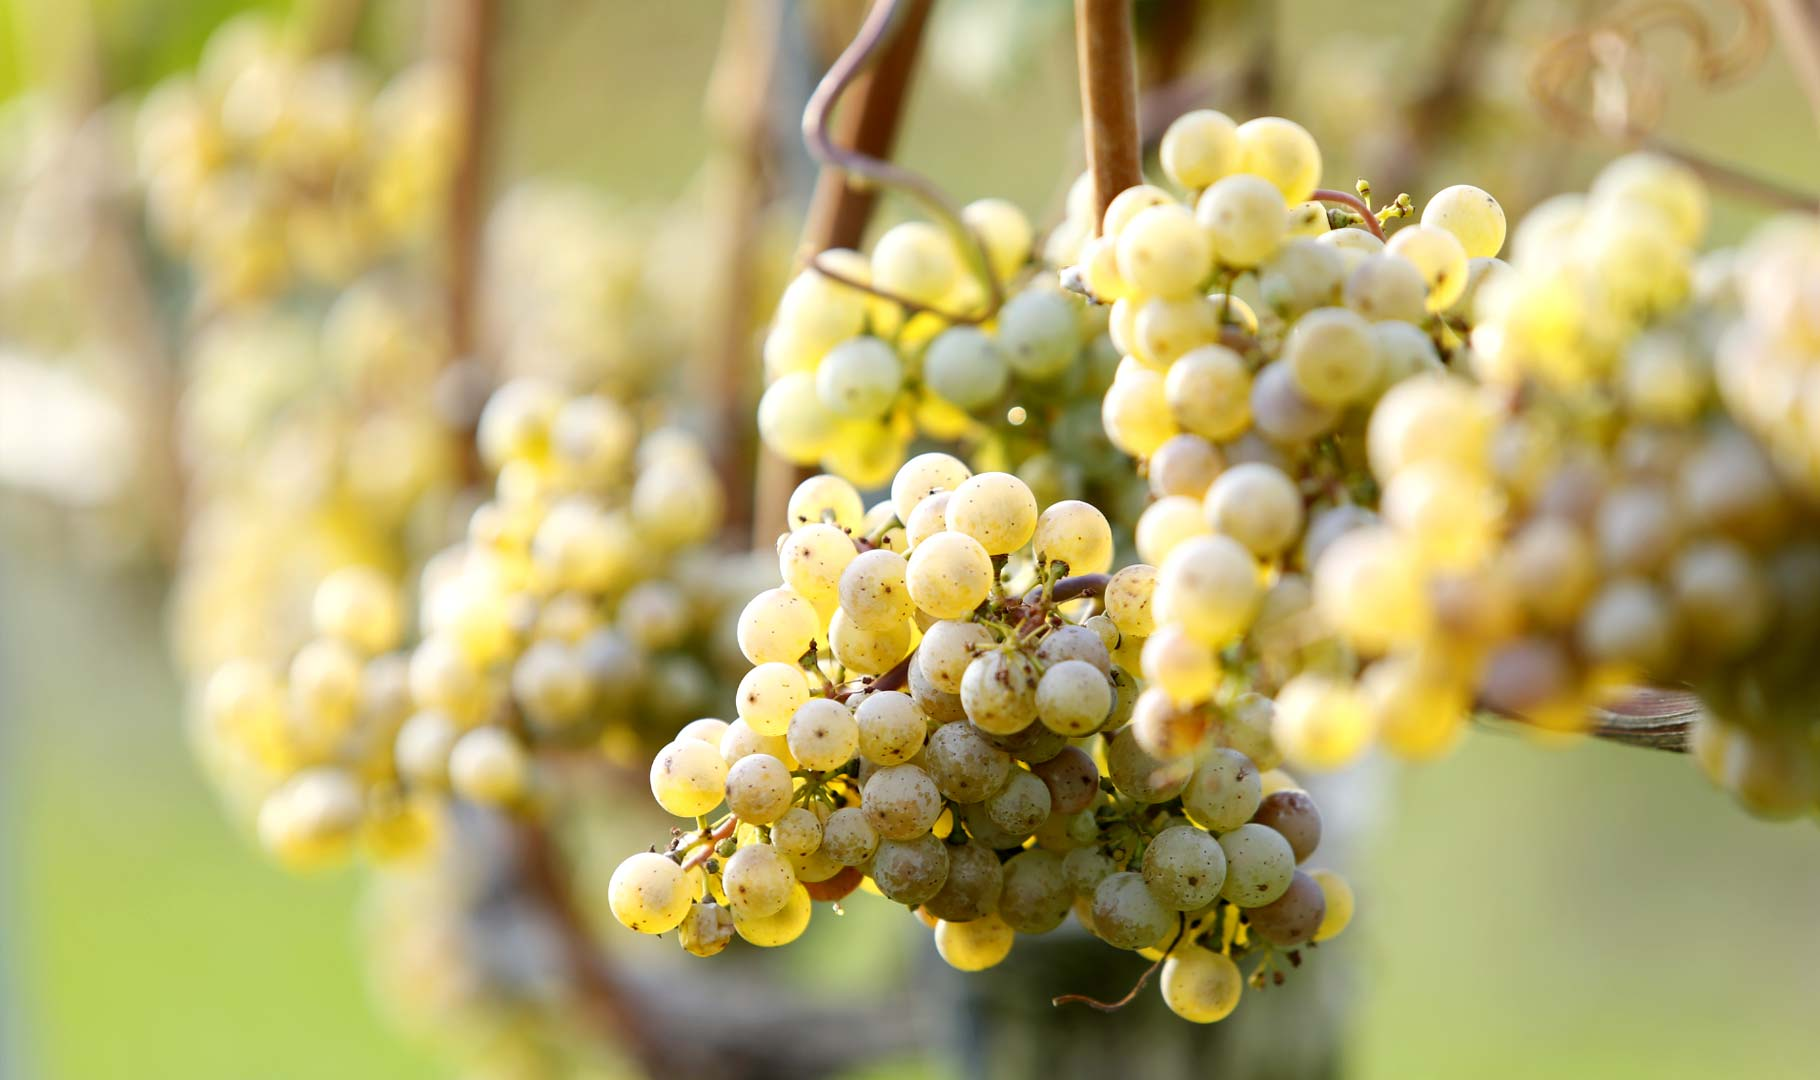 Grapevine with white grapes